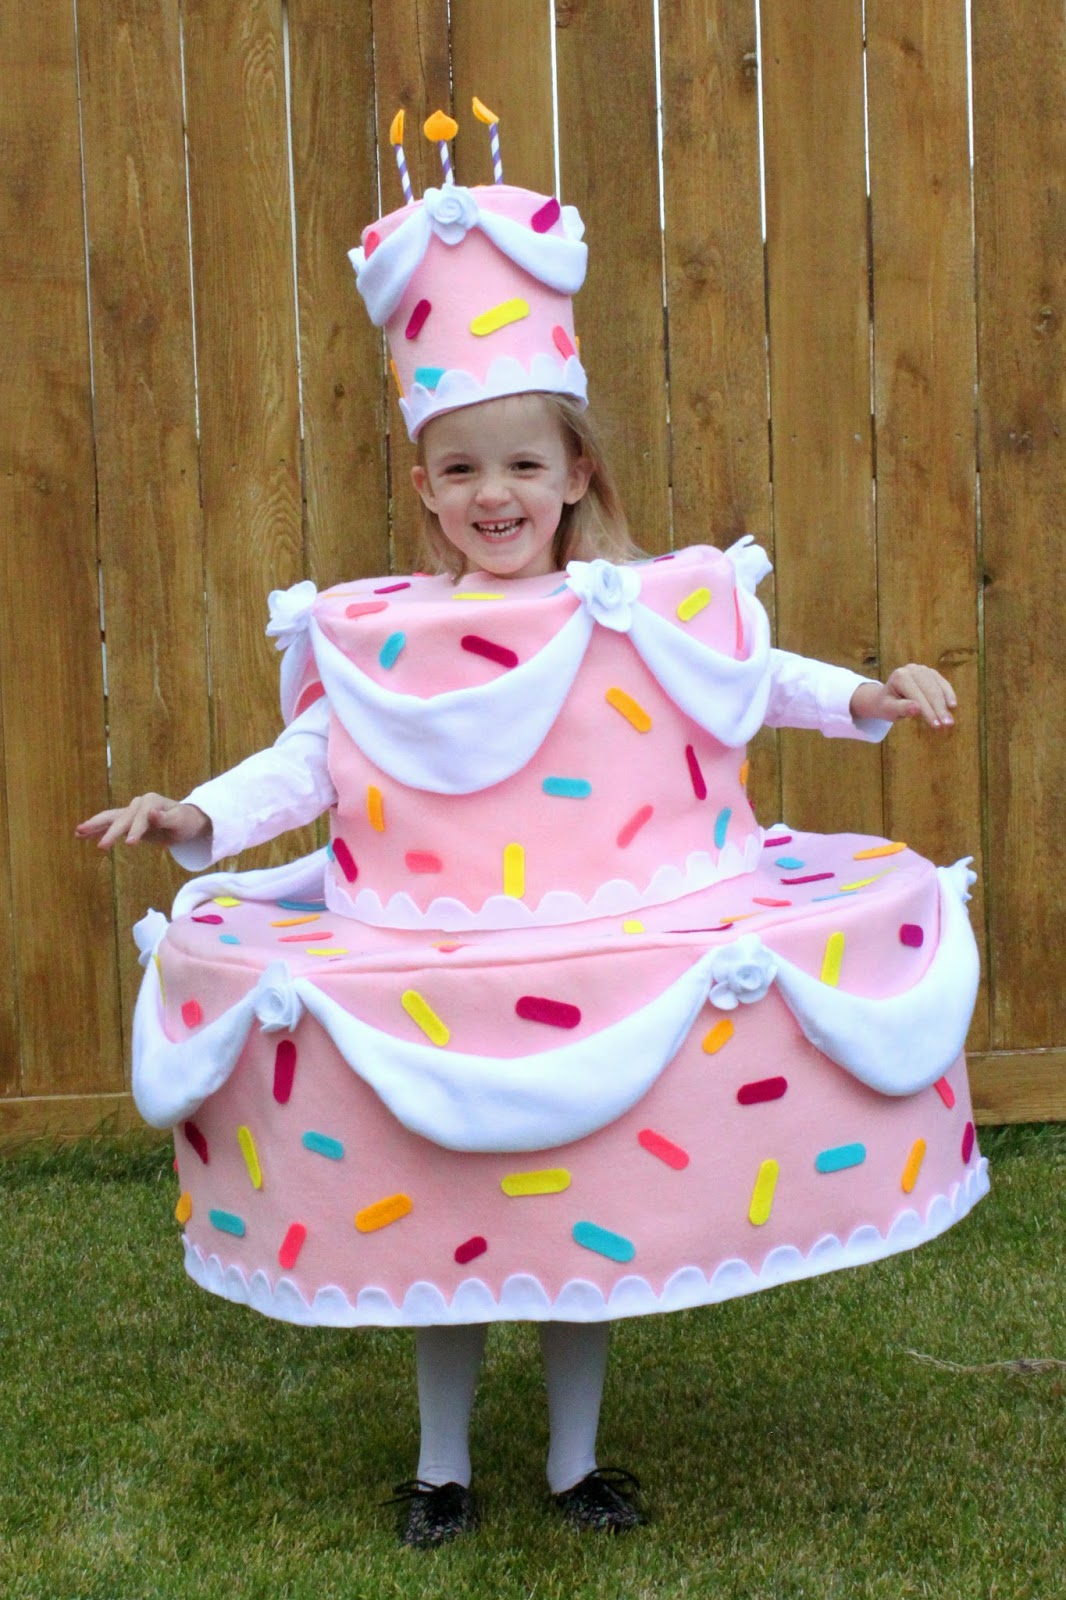 ... be kind of girly not like a wedding cake but fun not like a 9x13 pan